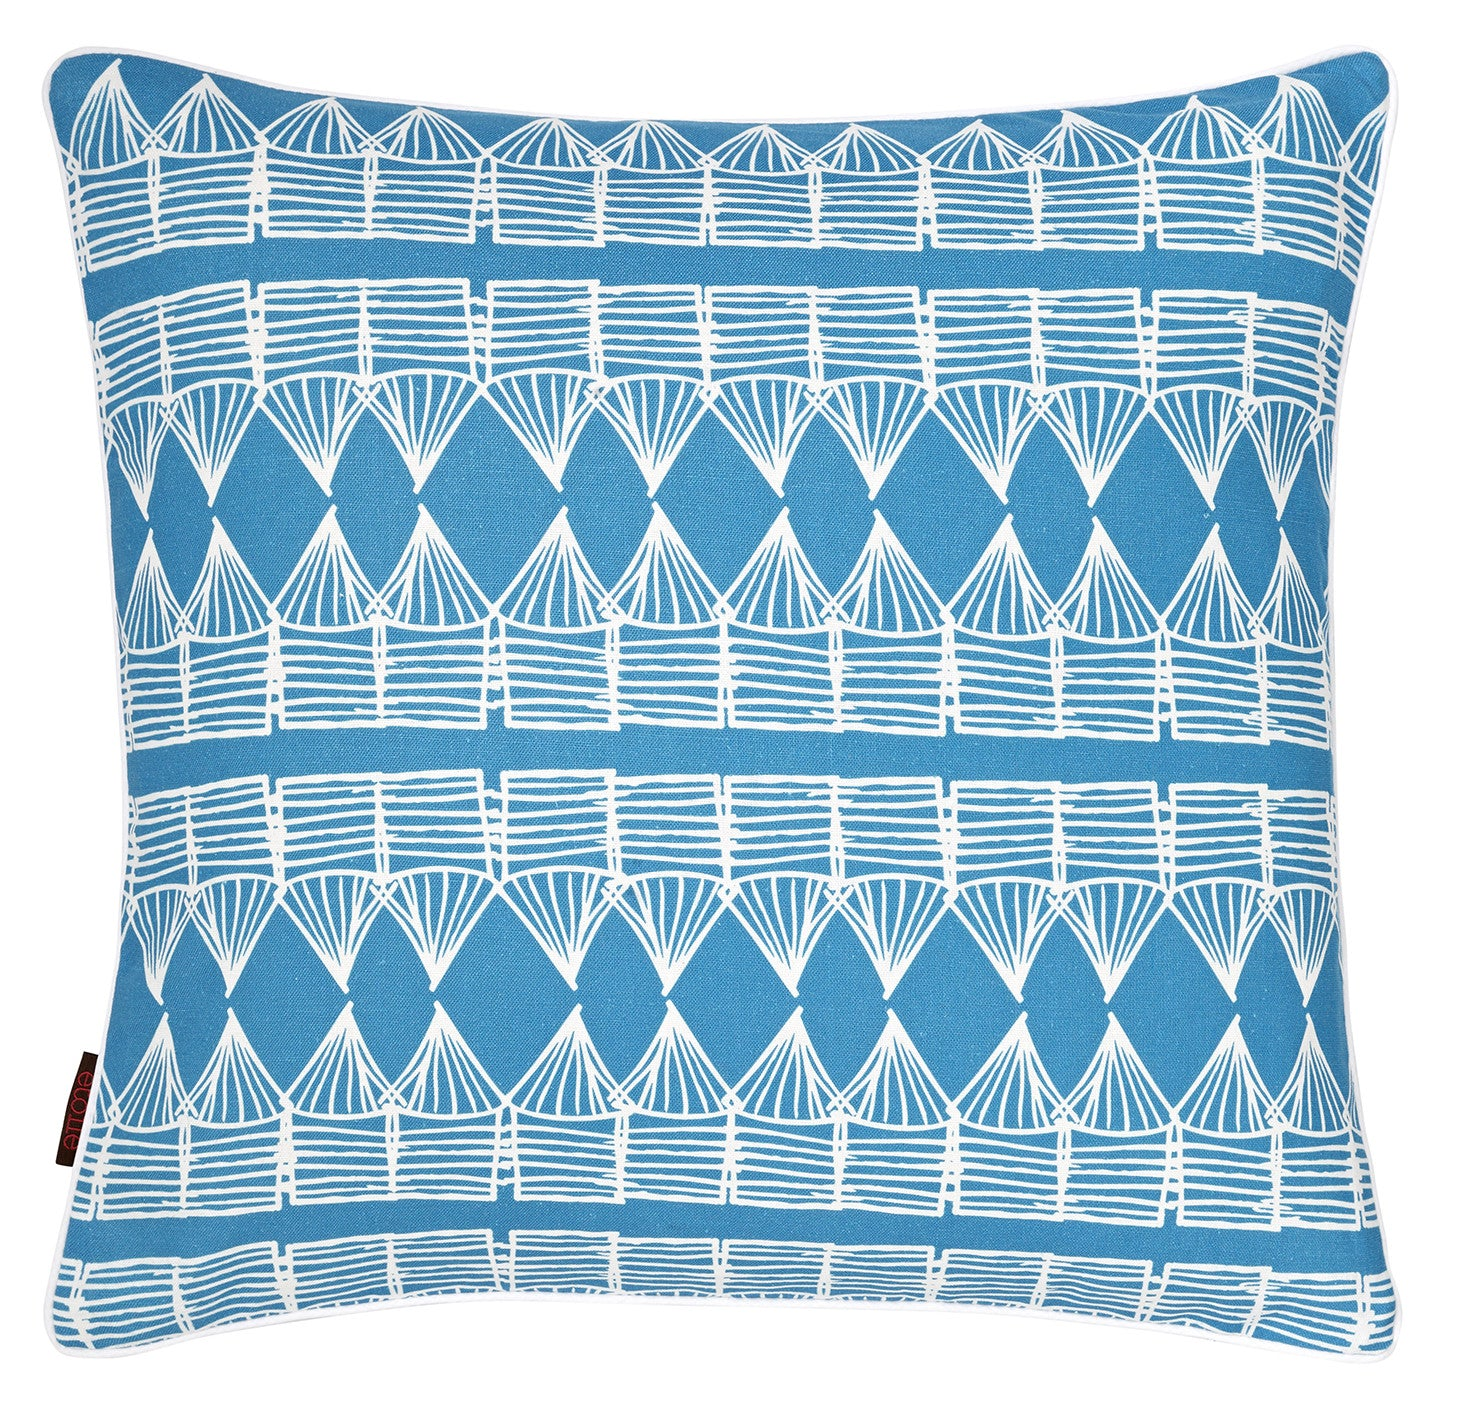 "Tiki Huts Pattern Linen Throw Pillow Cushion in Bright Turquoise Blue 45x45cm 18x18"" ships from Canada worldwide including the USA"